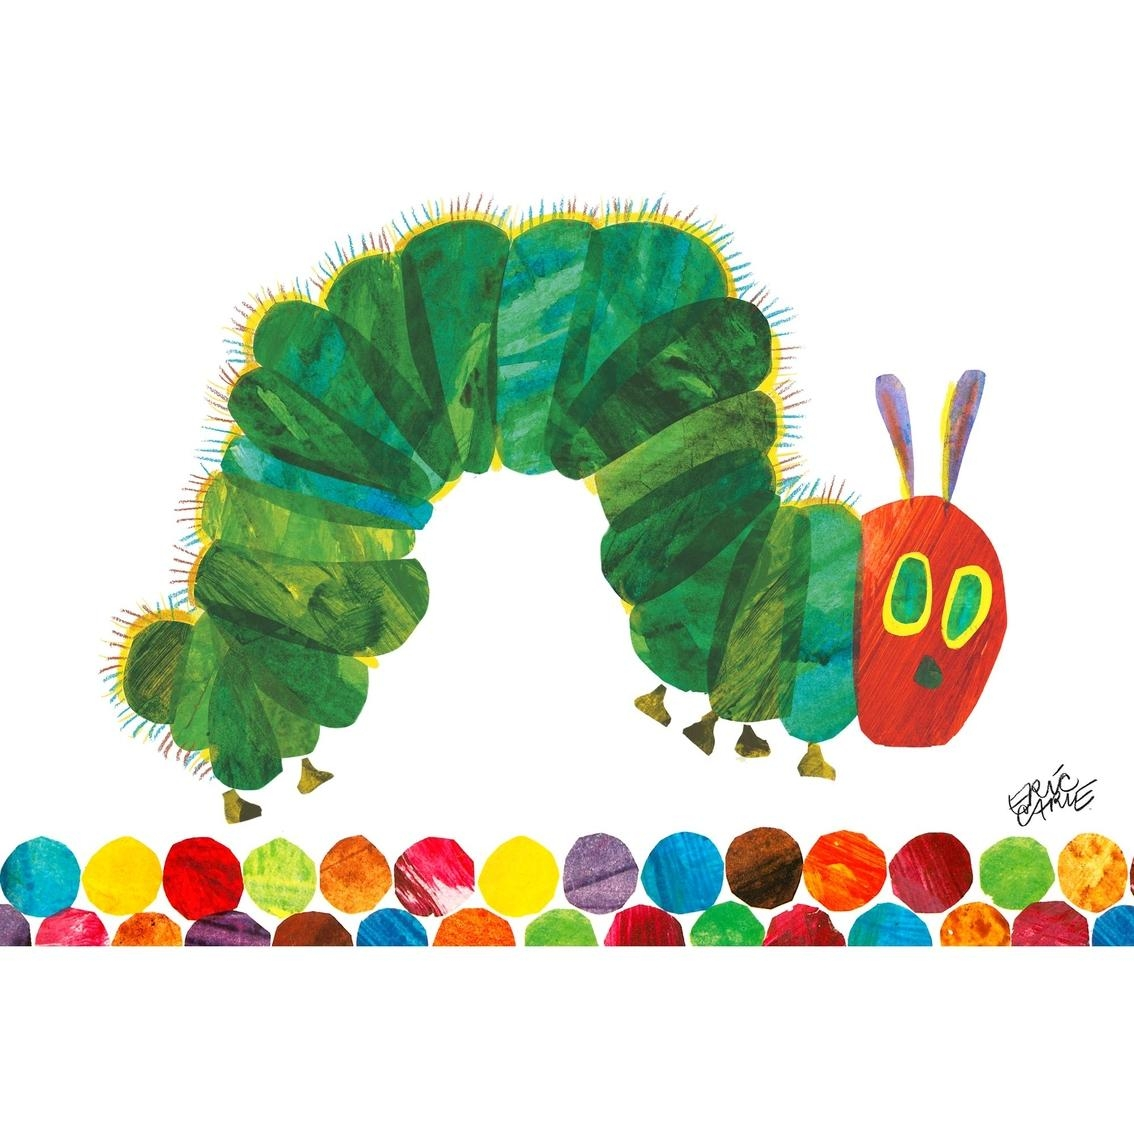 Greenbox Art 24 X 18 Eric Carle's The Very Hungry Caterpillar Throughout Very Hungry Caterpillar Wall Art (View 8 of 20)